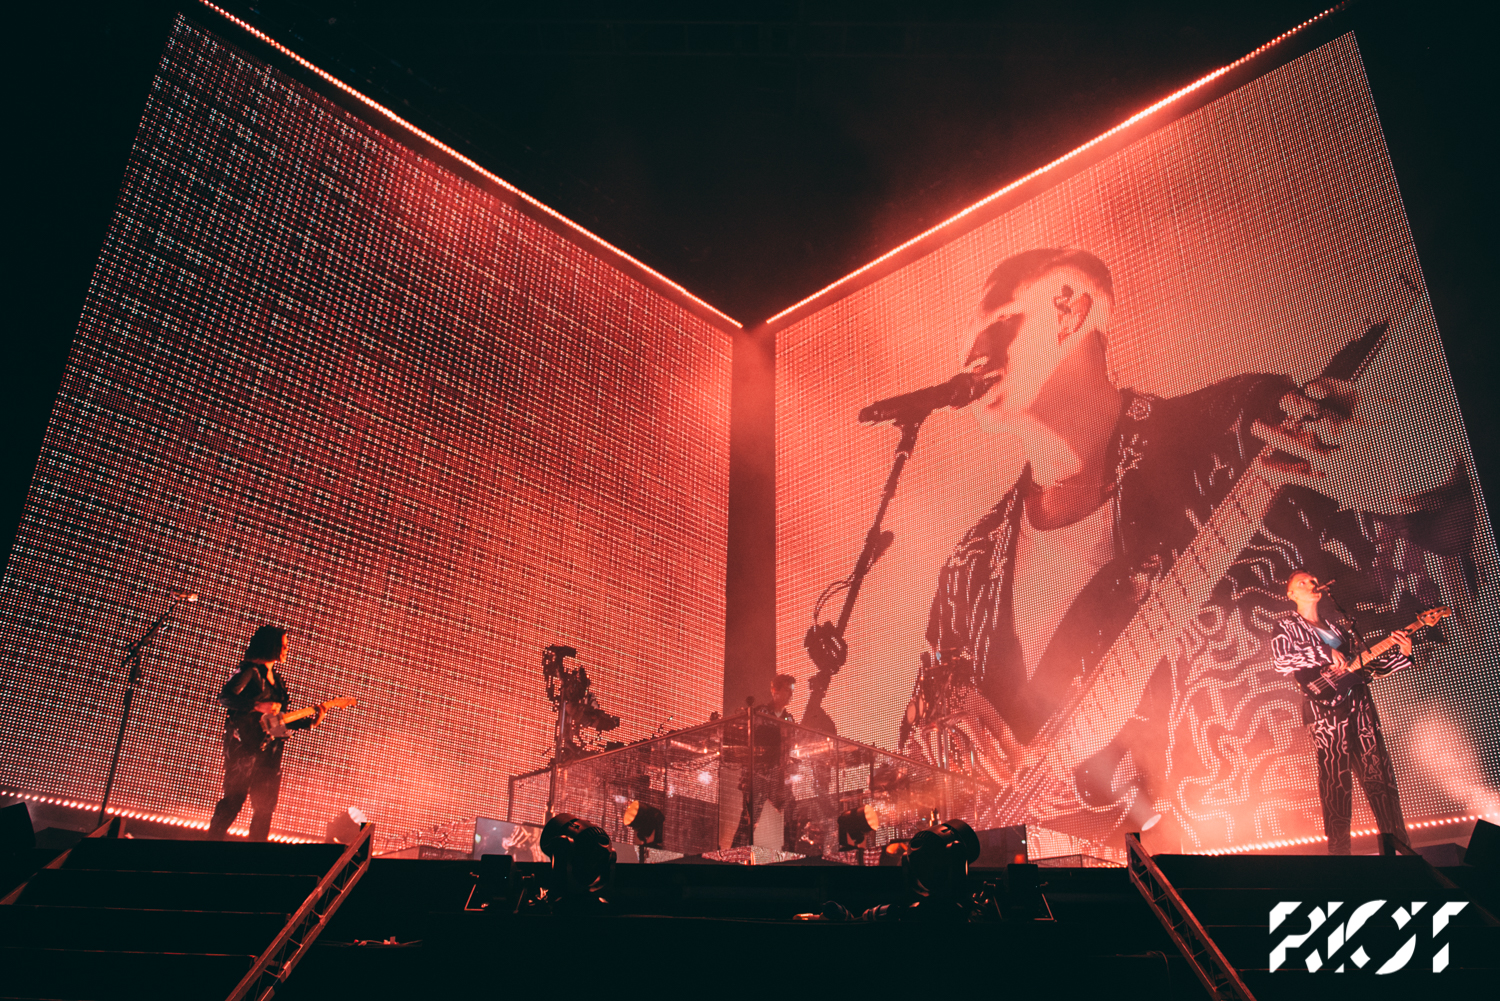 See out pictures of The xx's headline show here